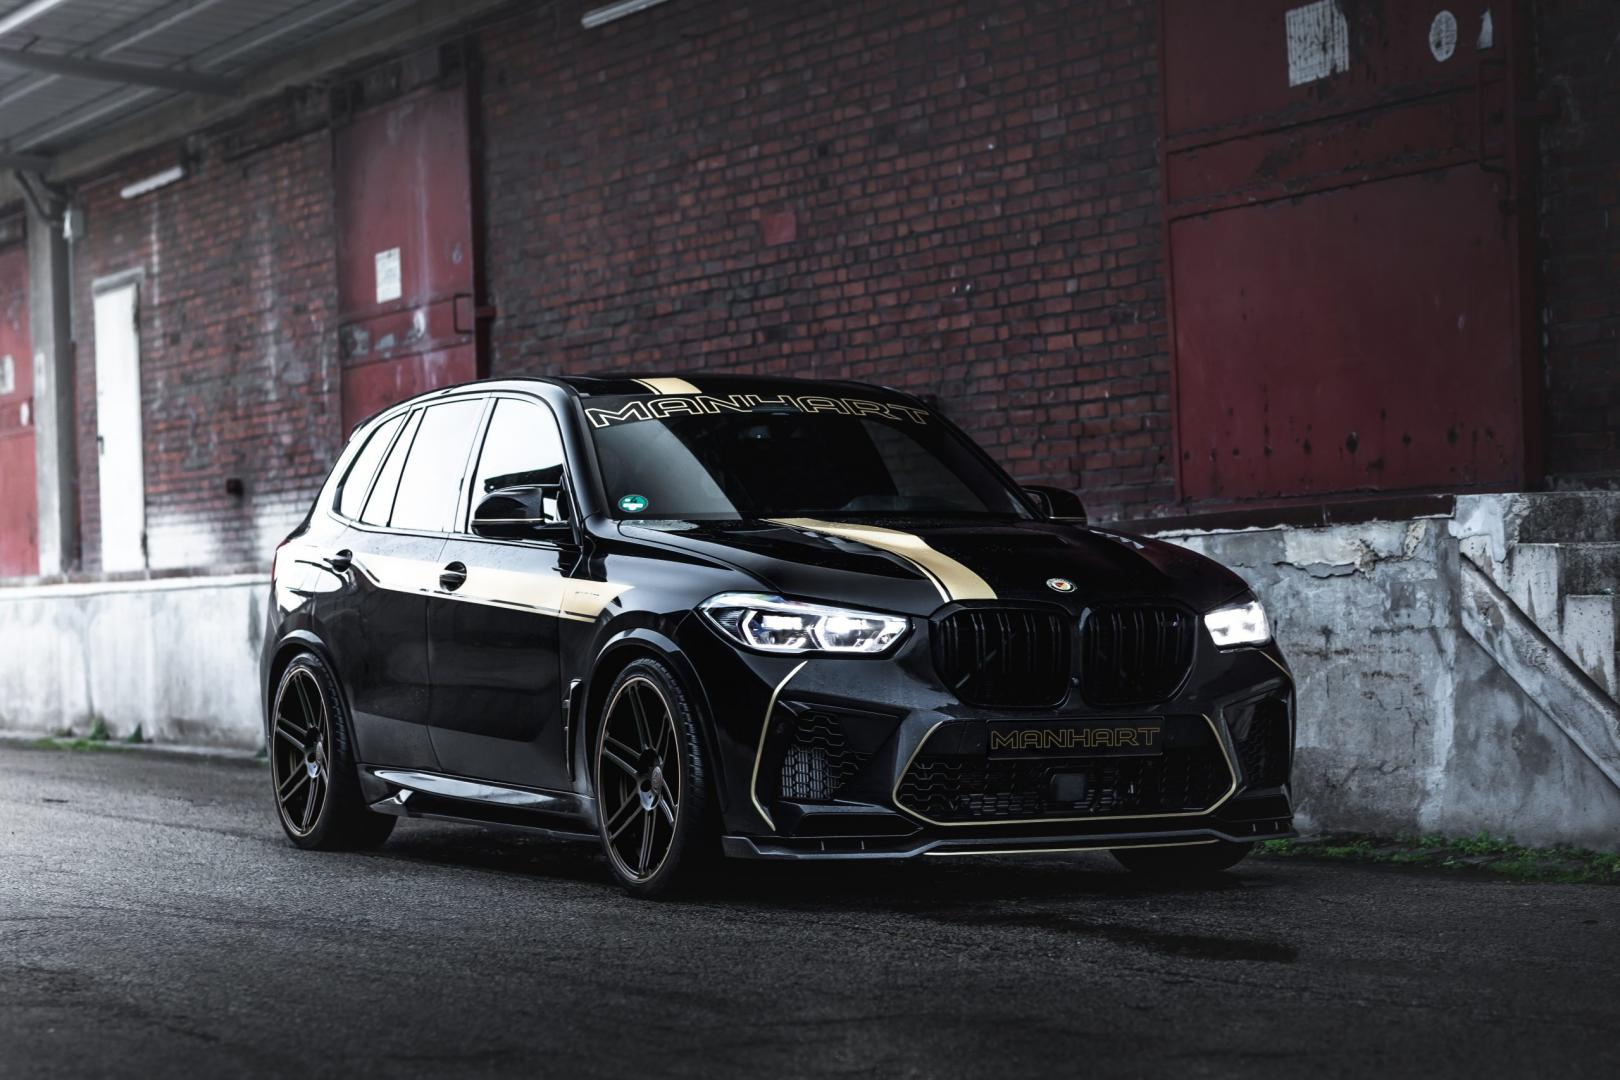 Manhart MHX5 800 (BMW X5 M Competition)